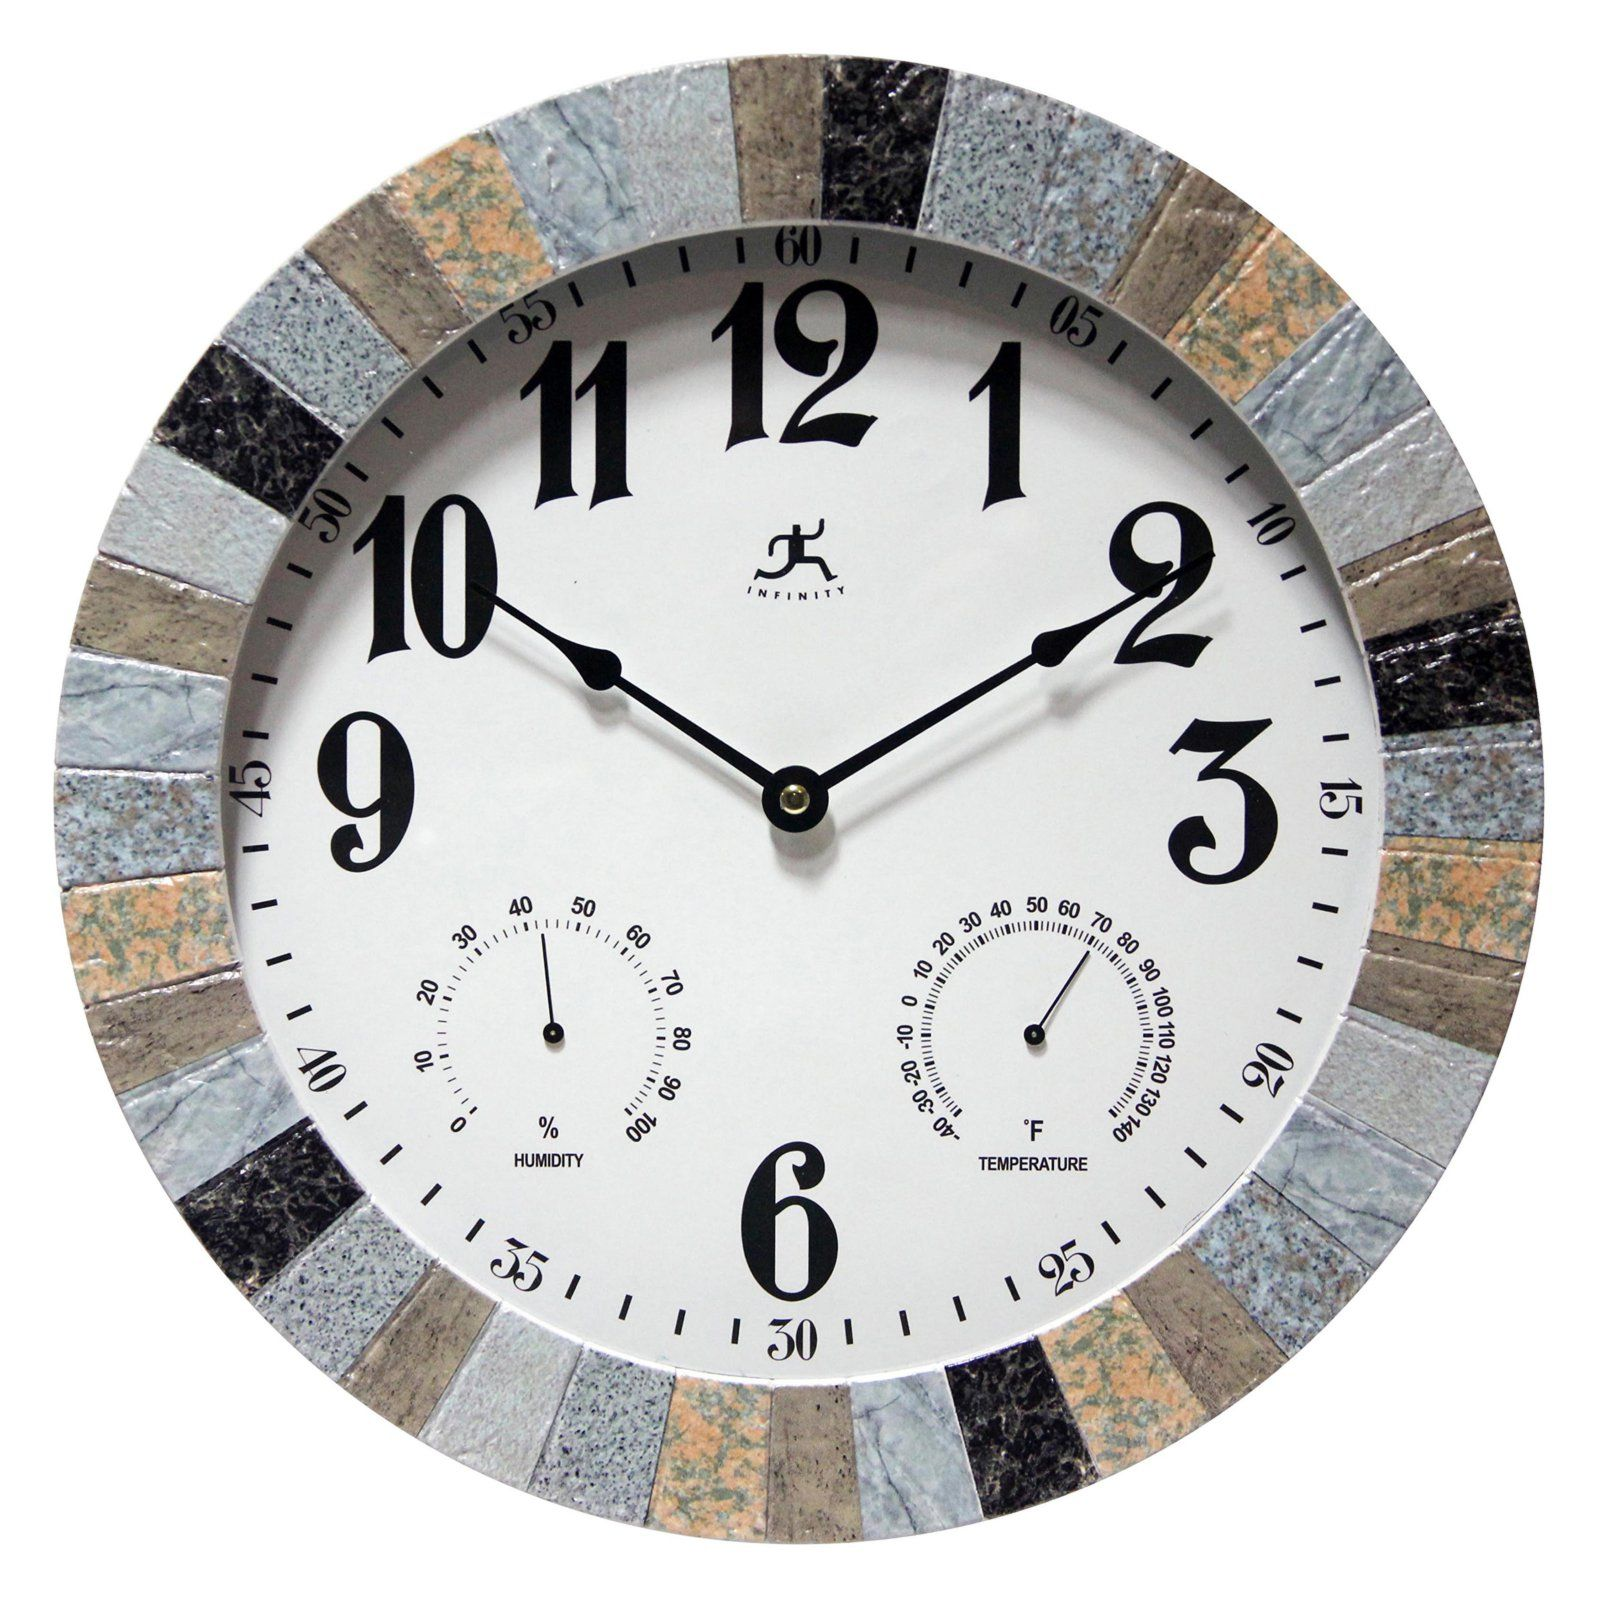 Infinity Instruments Mason 13 5 In Wall Clock Wall Clock Outdoor Wall Clocks Round Wall Clocks